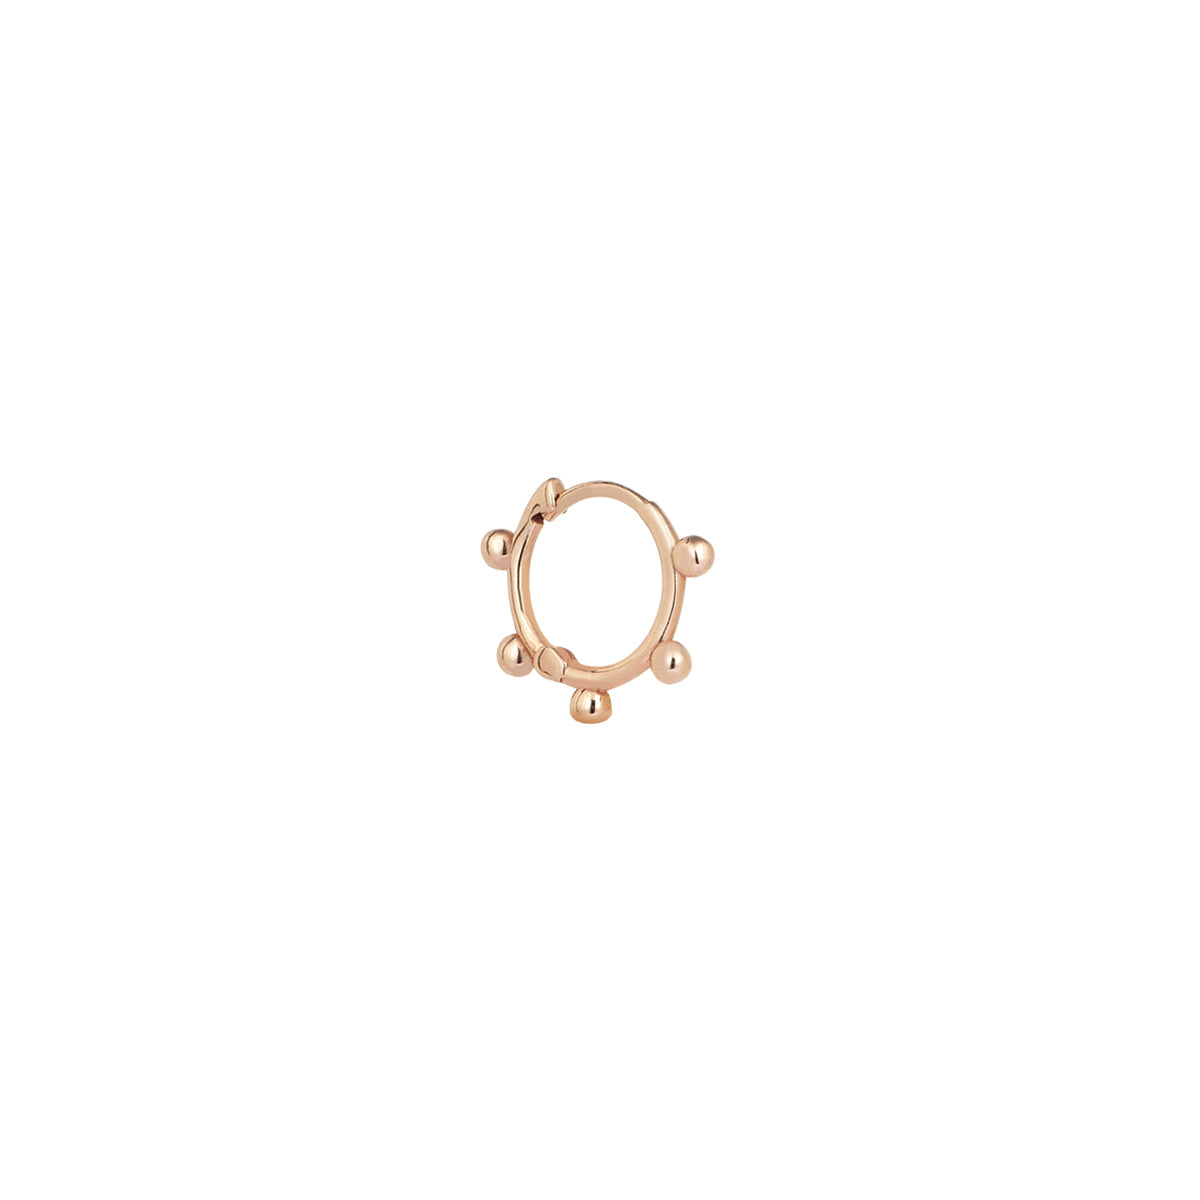 5 Balls Mini Hoop by Kismet for Broken English Jewelry